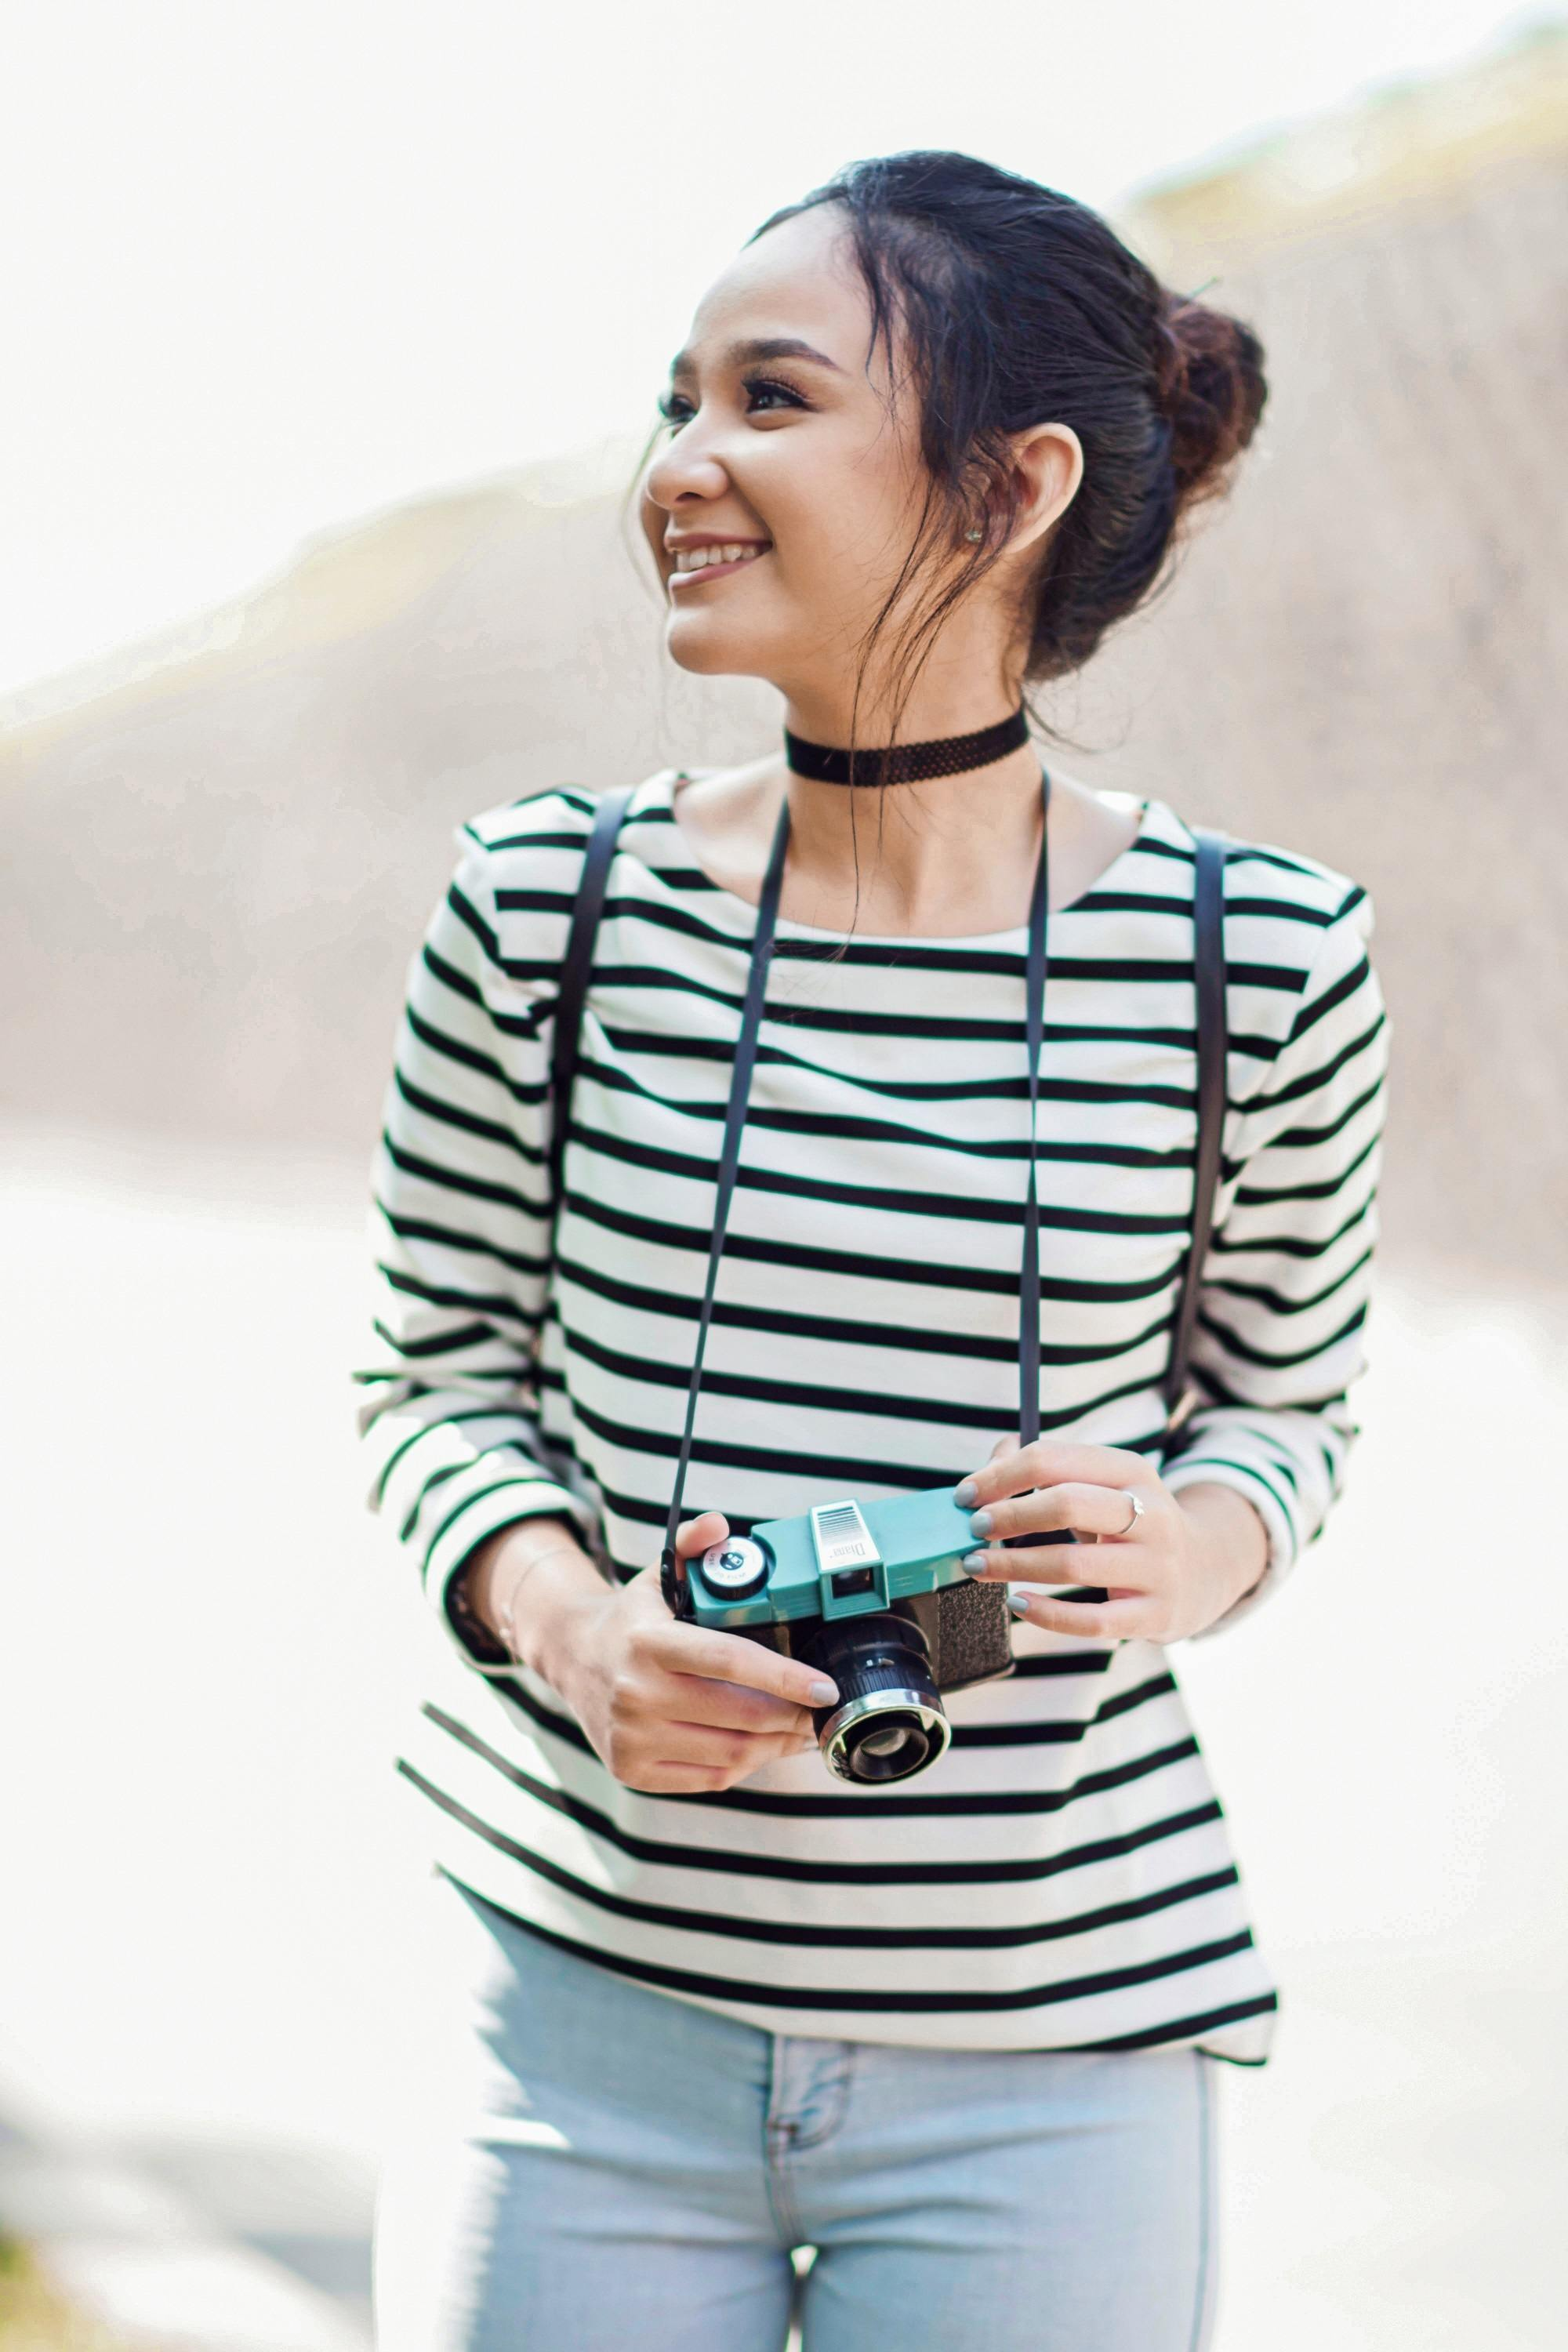 Hair care tips for traveling: Asian woman with long hair in a bun wearing striped shirt and denim jeans outdoors